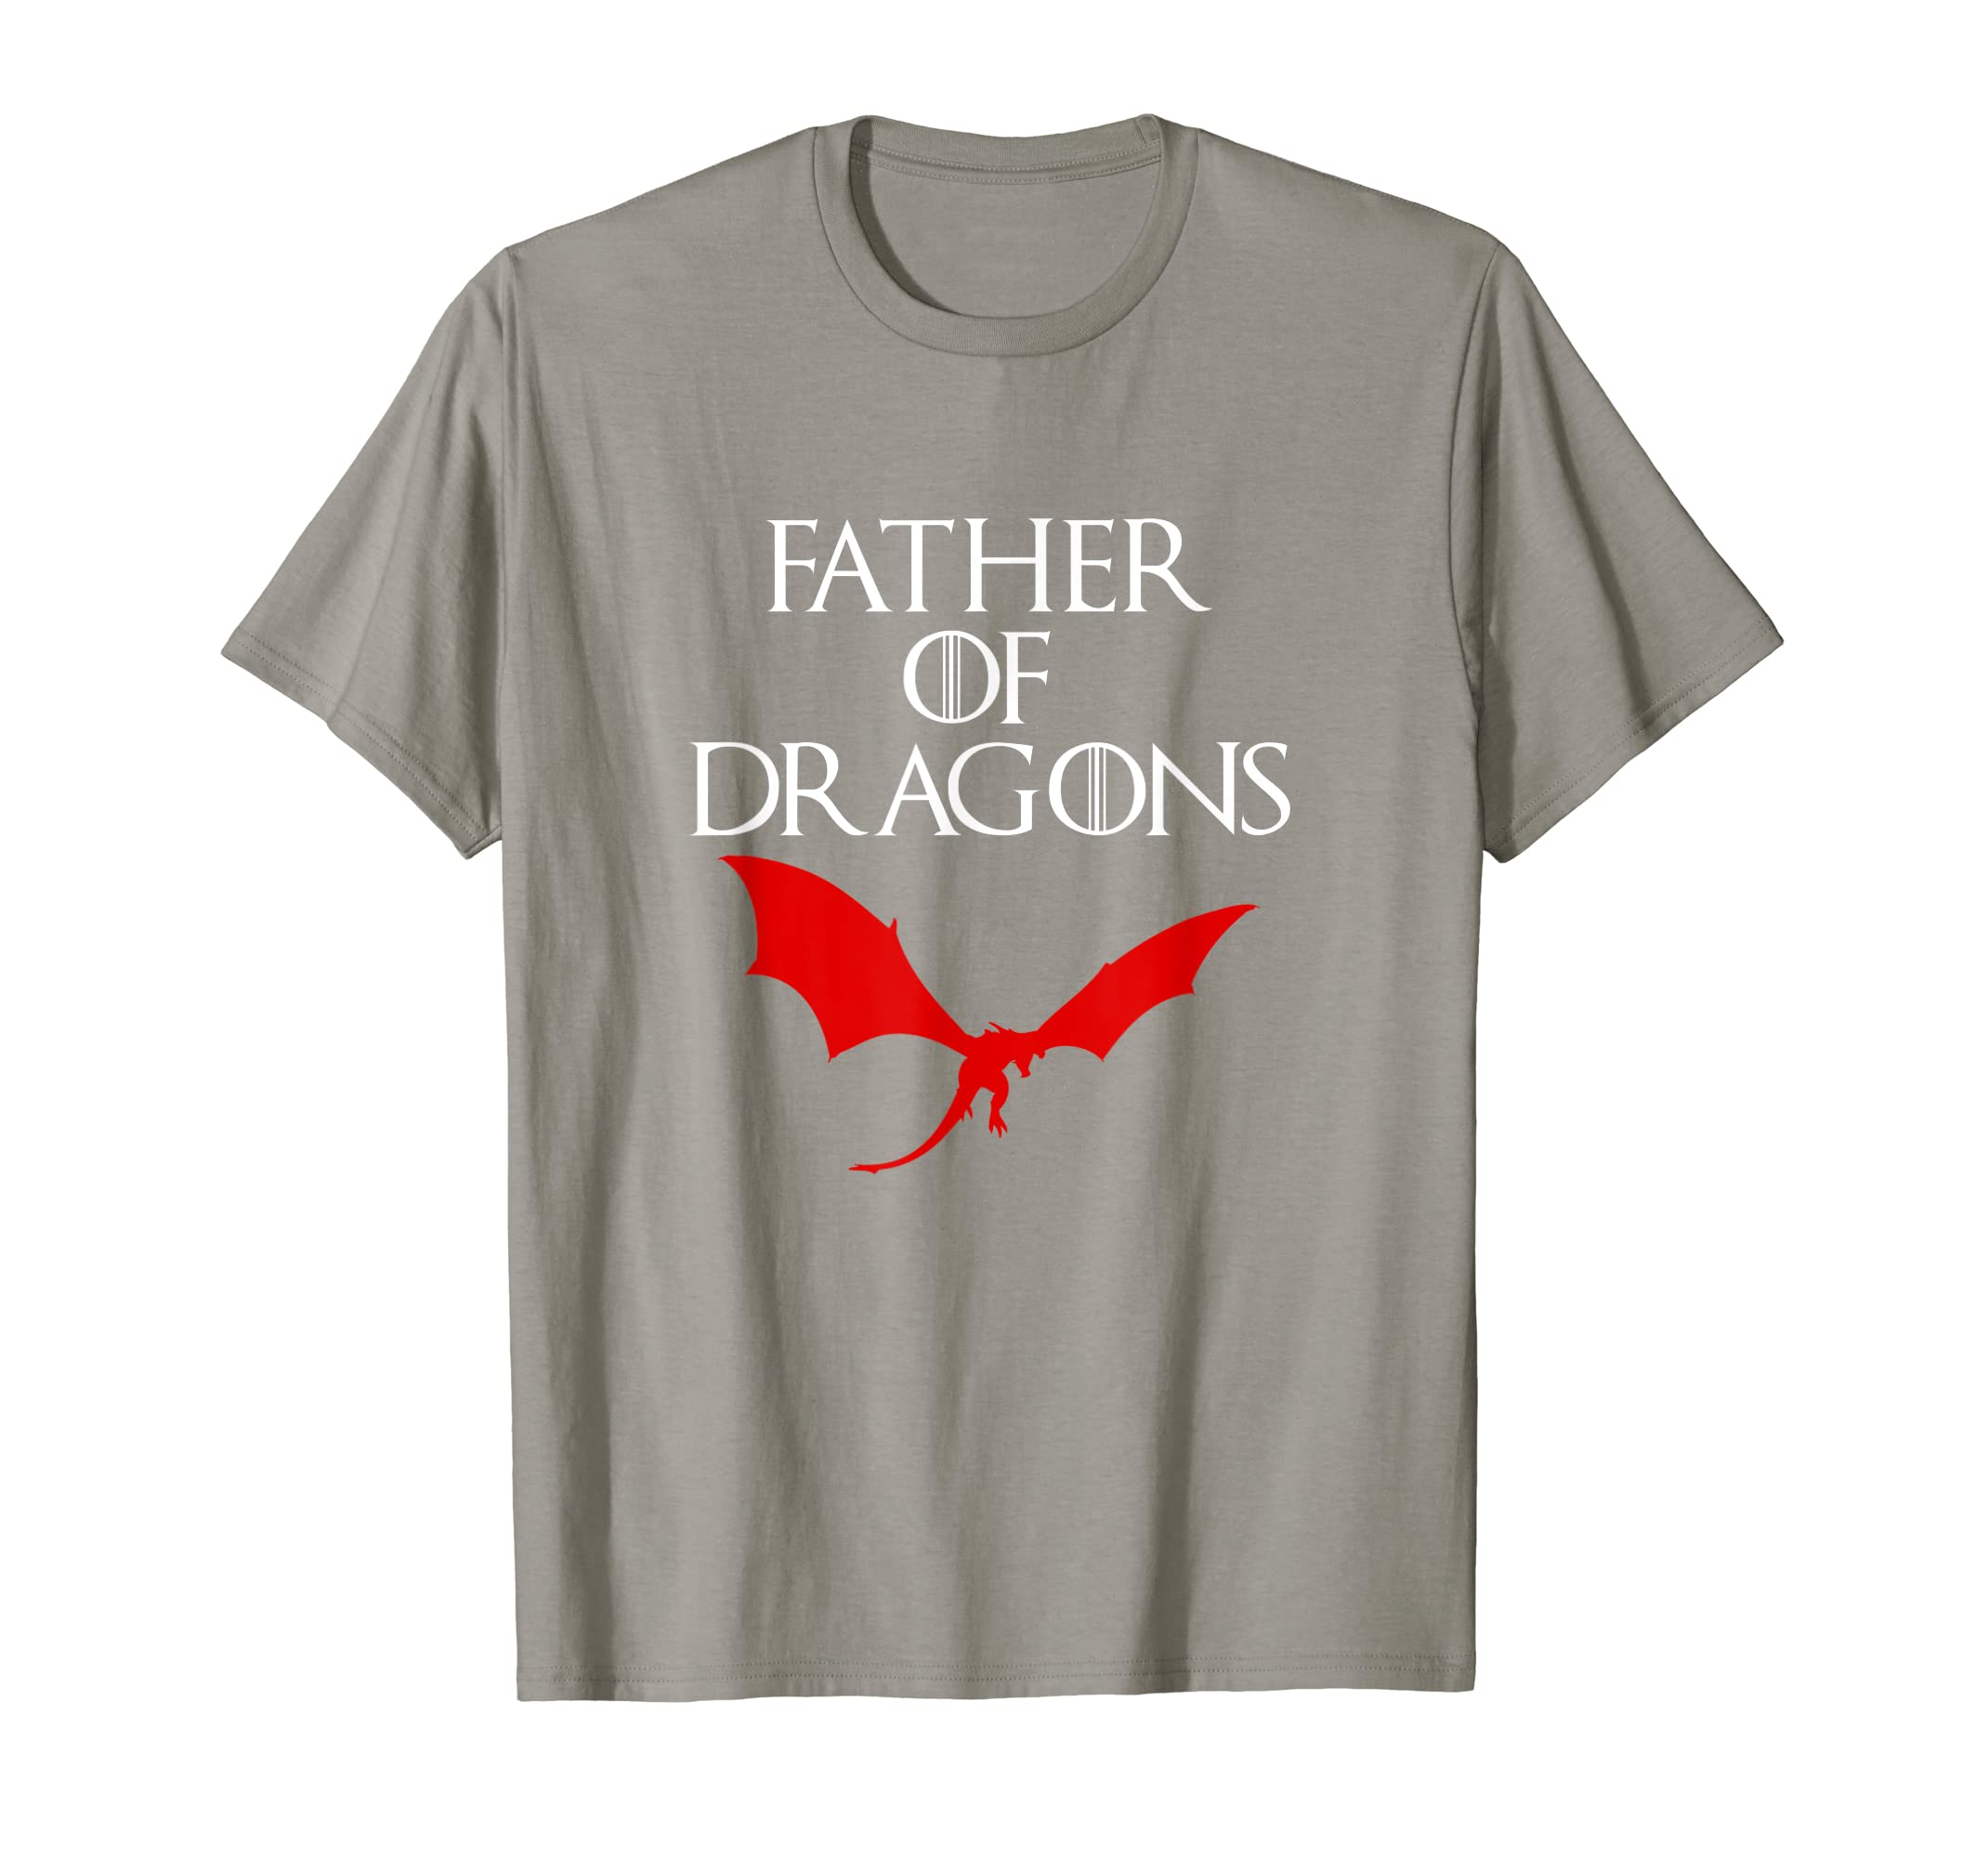 d39256d9 Amazon.com: Mens FATHER OF DRAGONS T SHIRT Gifts for Dads from Son  Daughter: Clothing